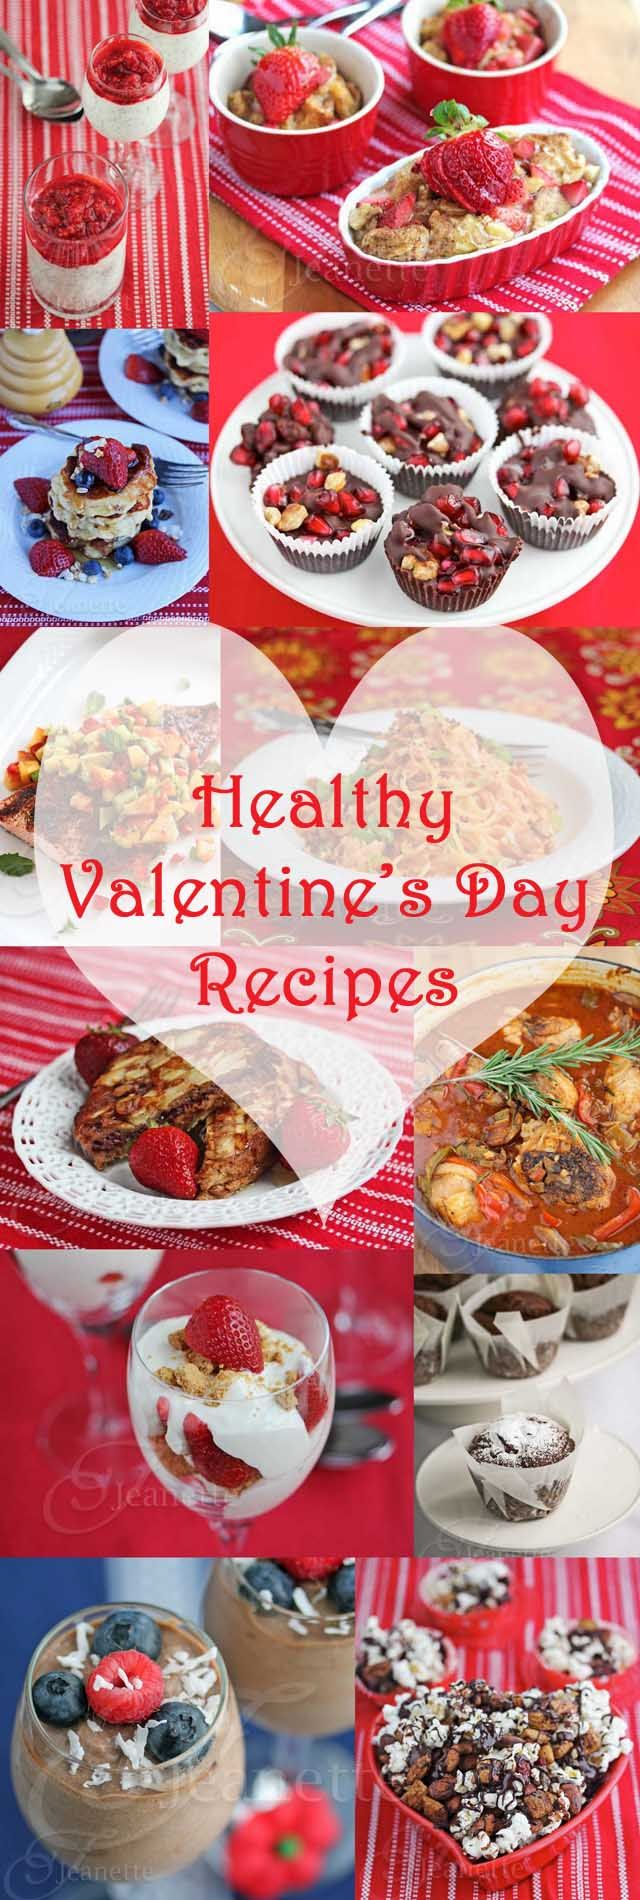 valentine night recipes